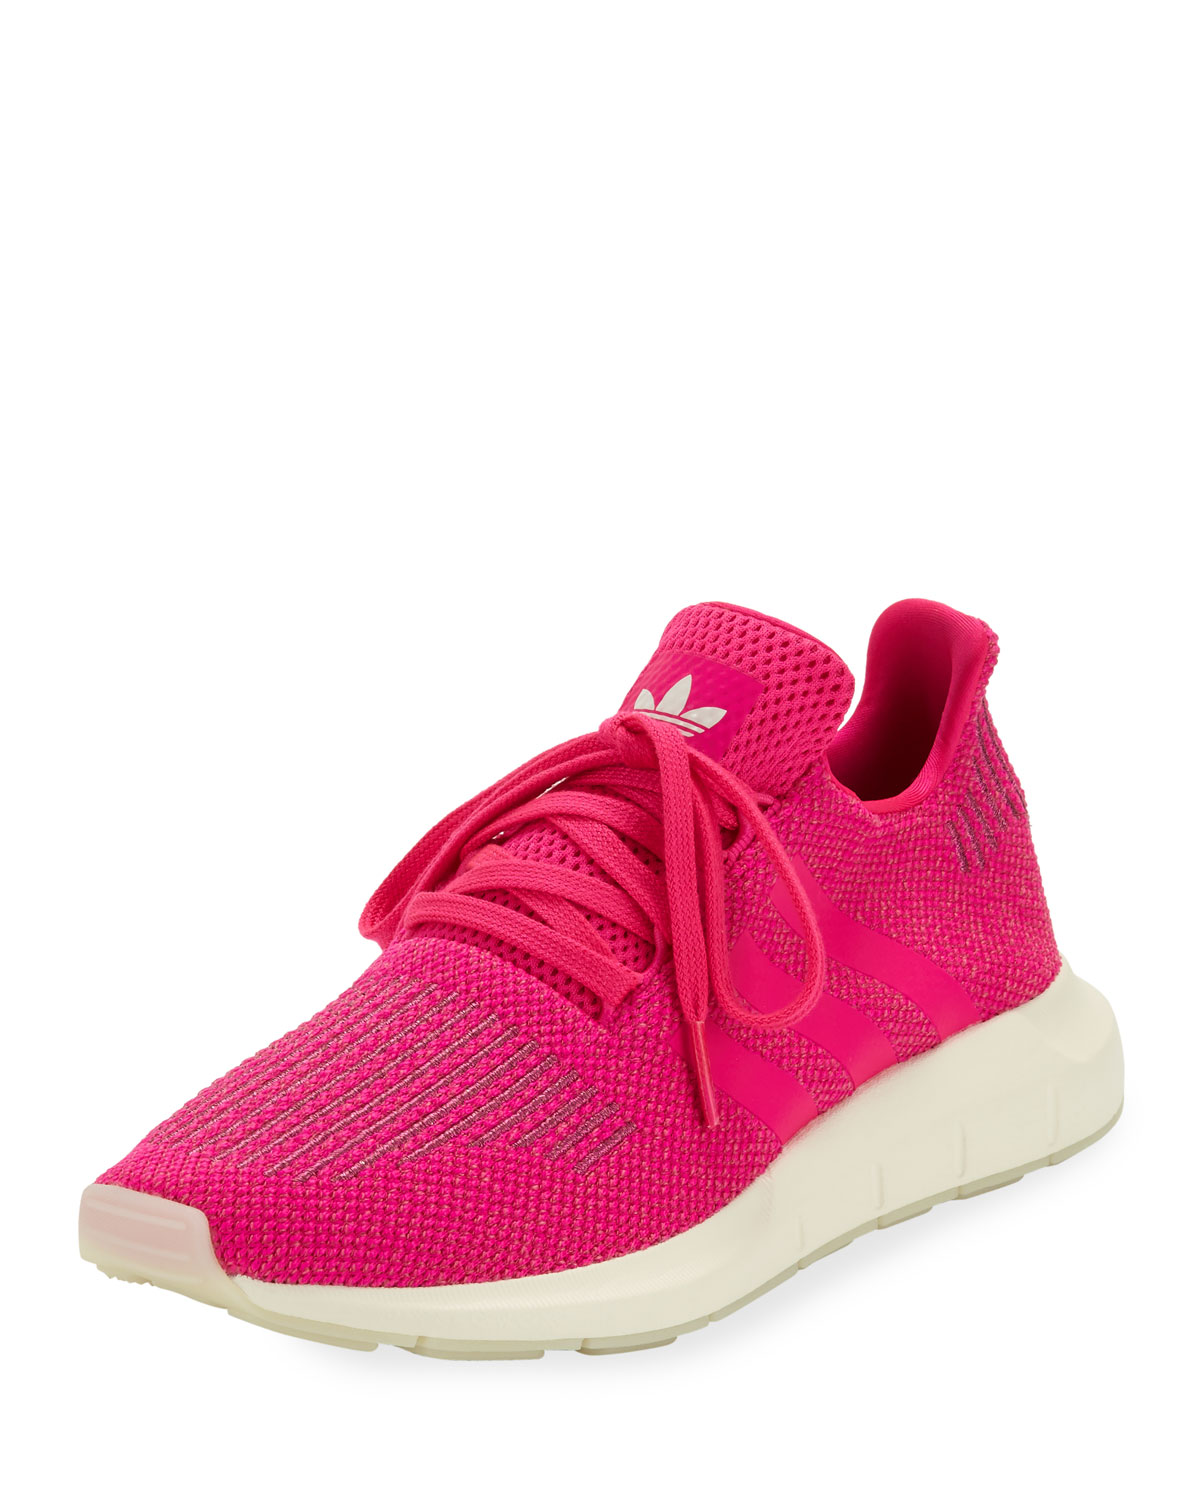 Swift Run Trainer Sneaker, Shock Pink